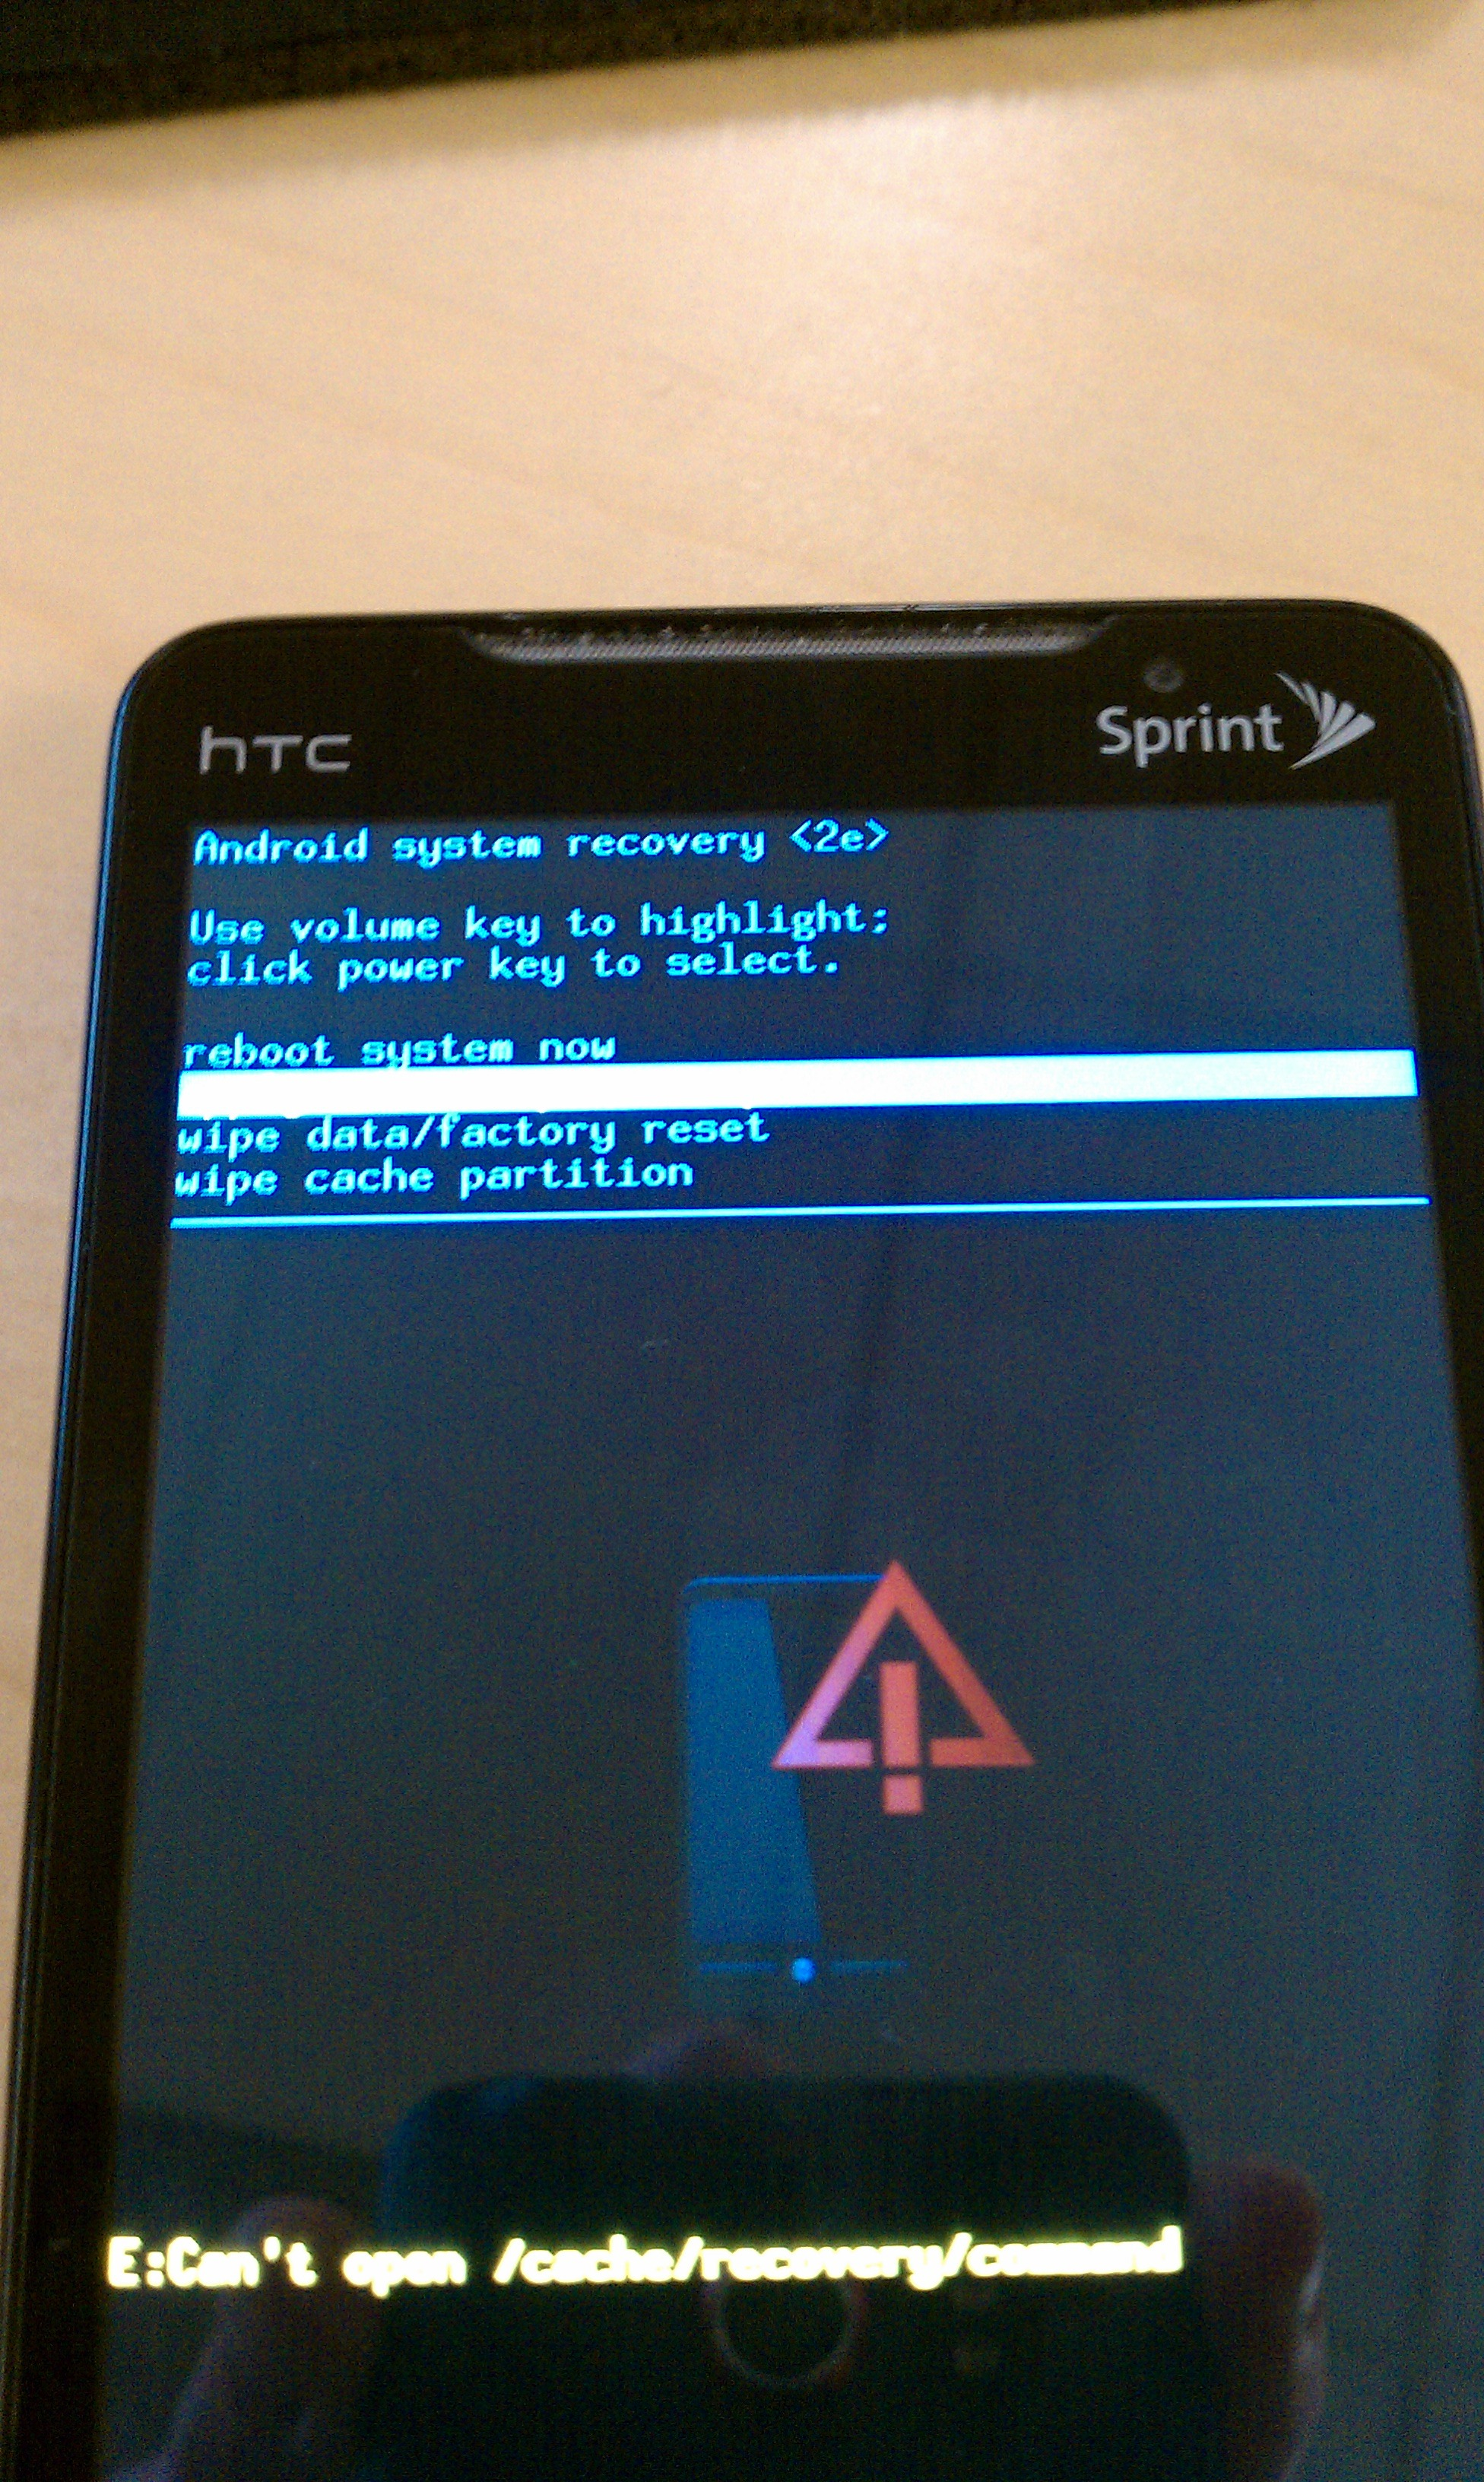 Updated, New Instructions, Mirror] BREAKING: HTC Releases Android